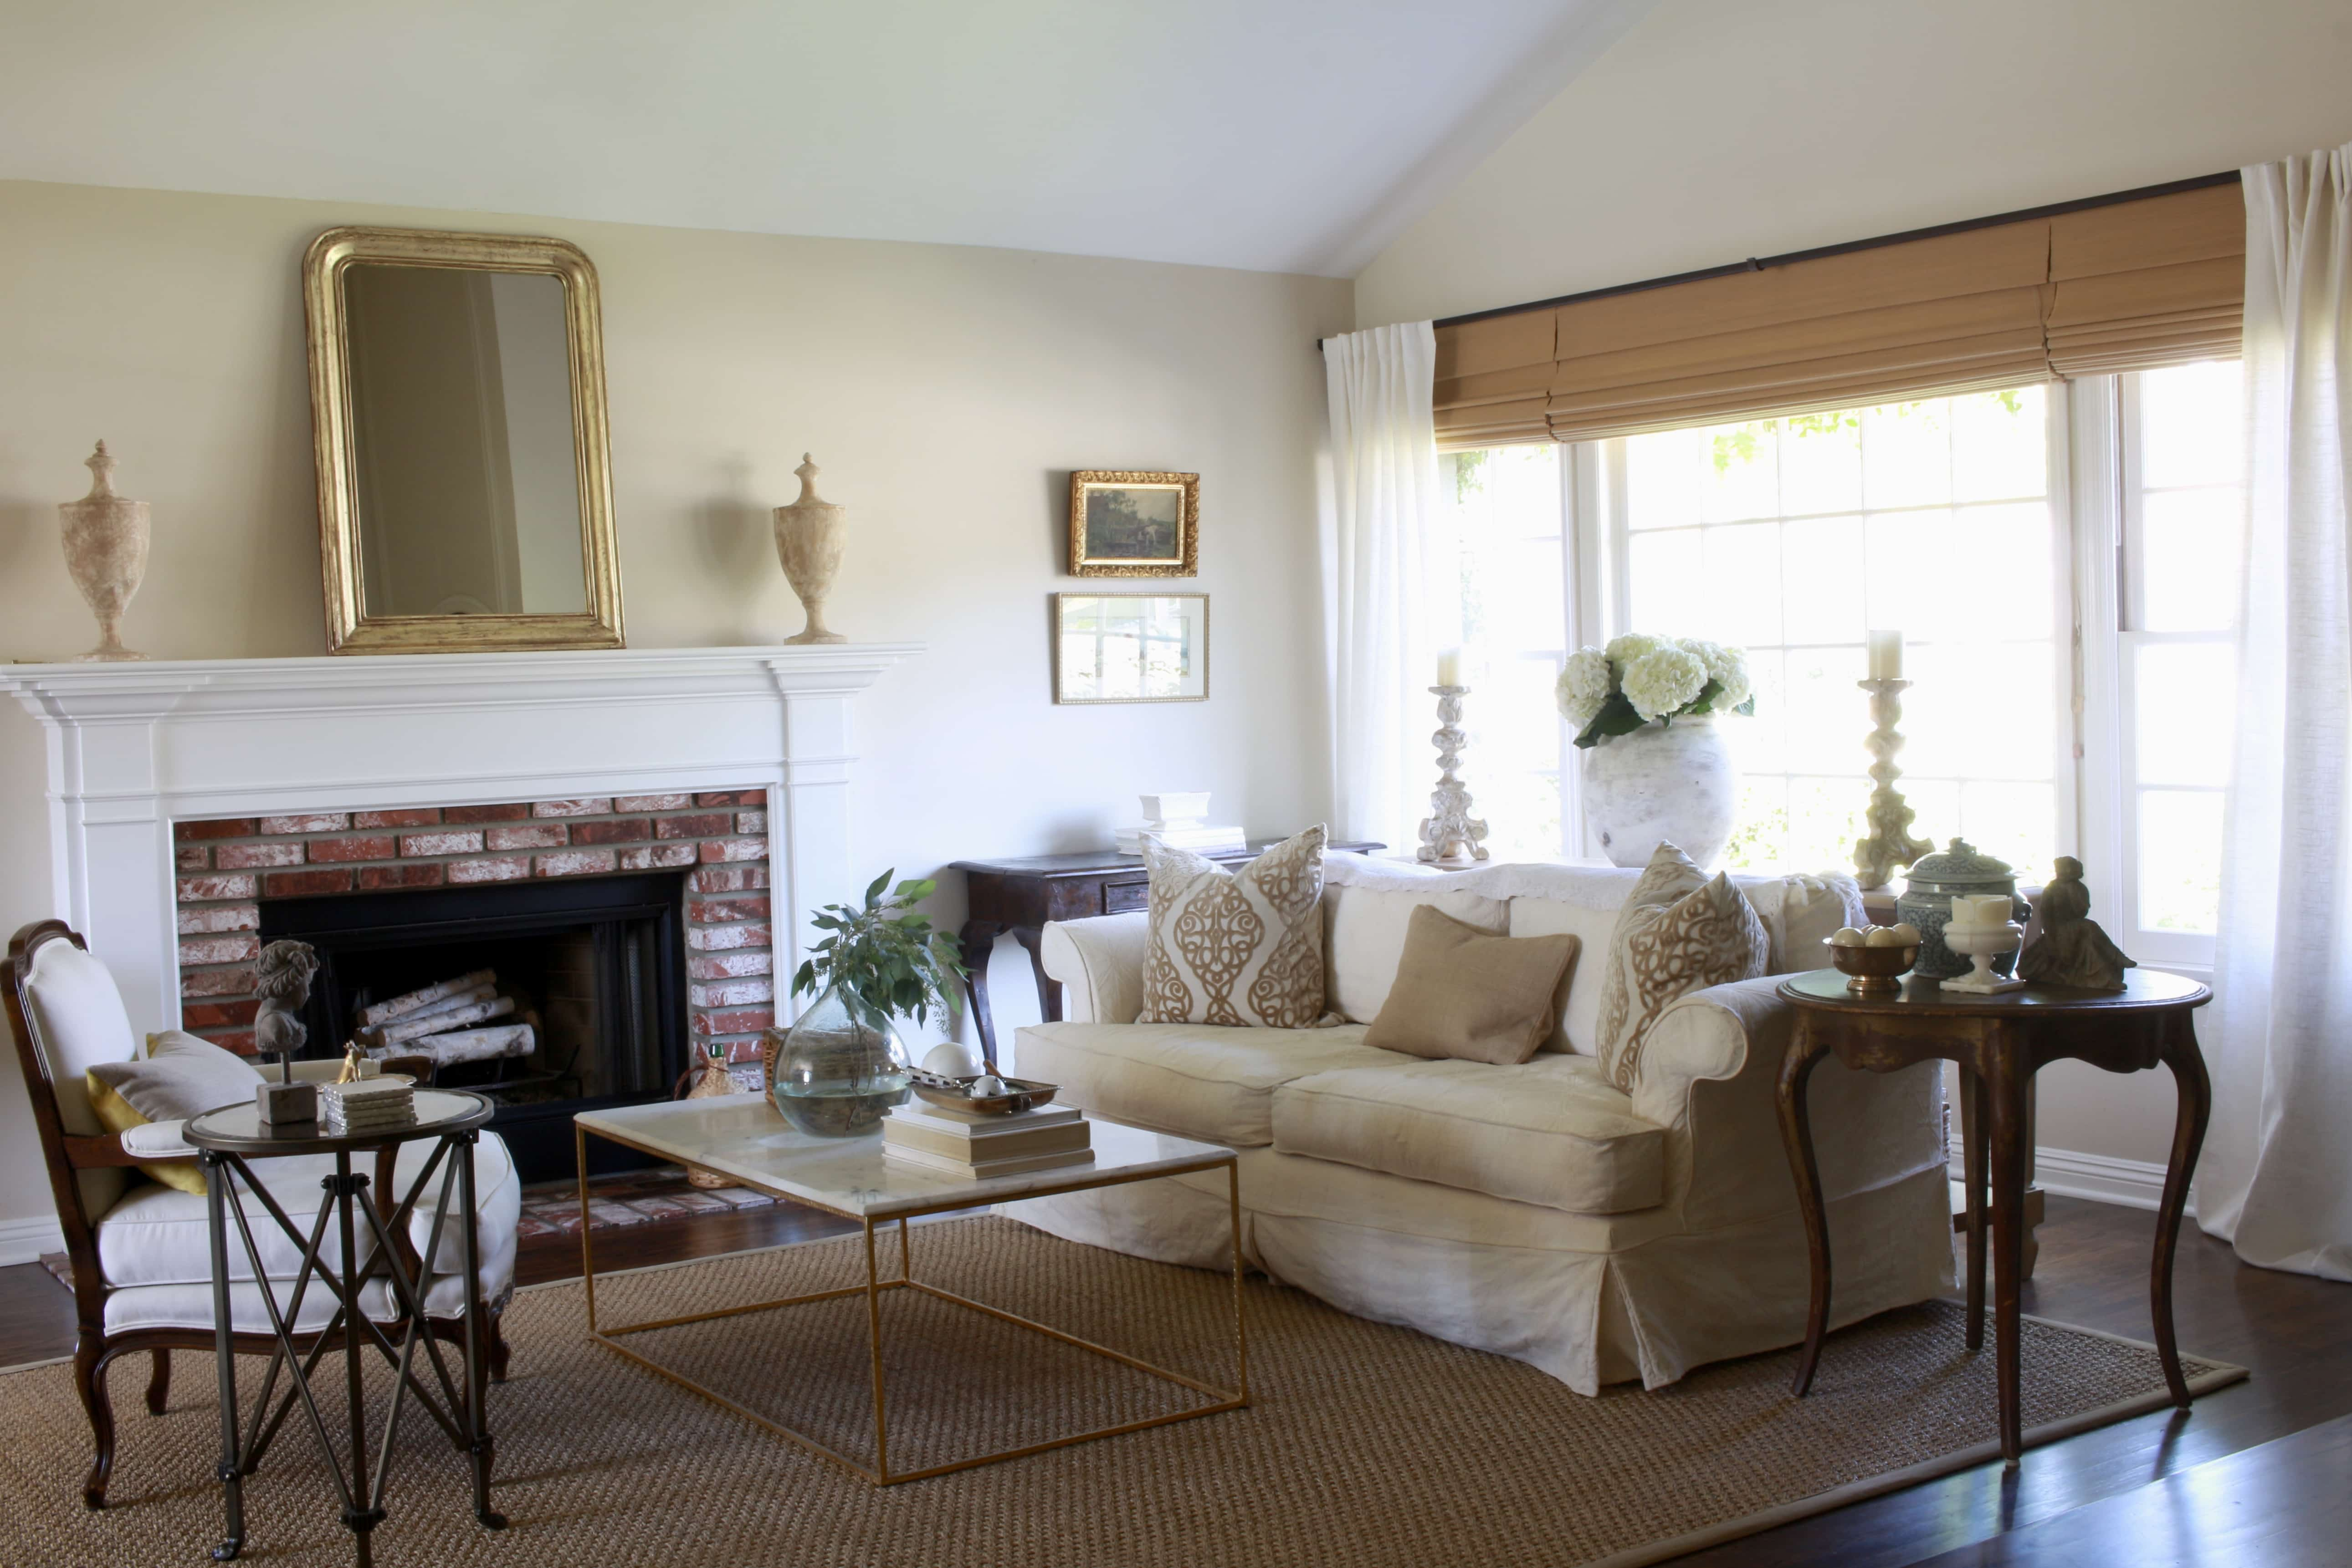 seagrass rugs gorgeous french influenced neutral living room - Seagrass Rug